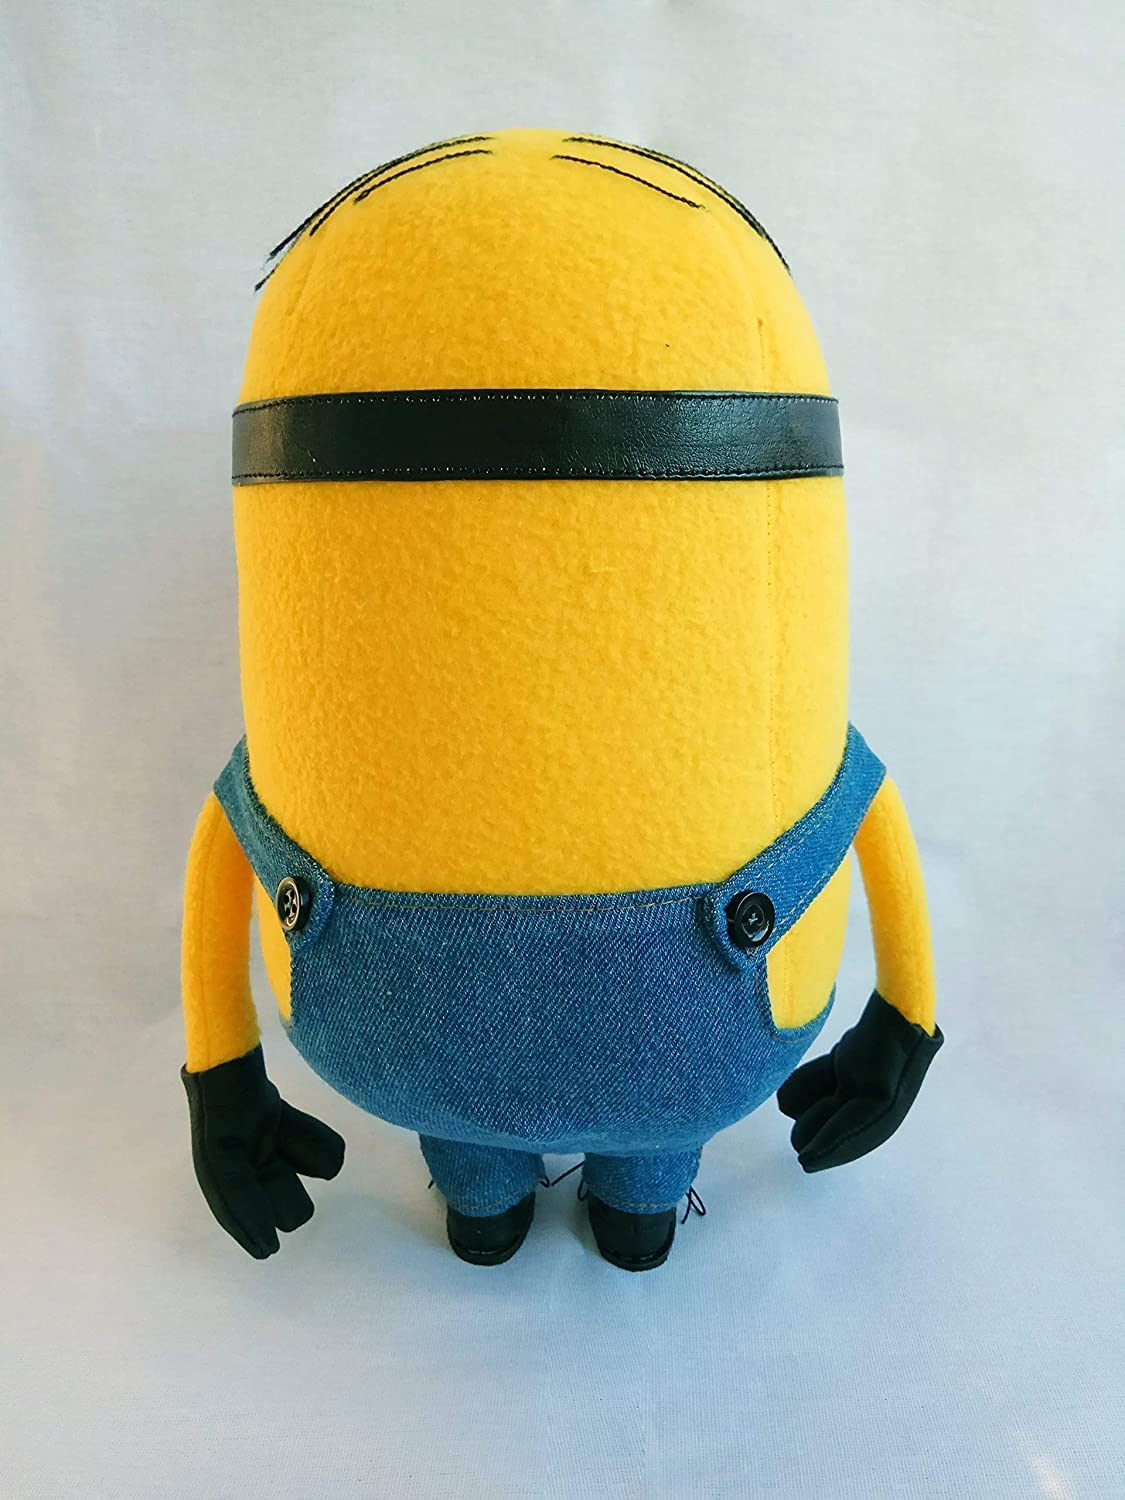 Despicable me 3 stuffed toy Dave The Minion handmade toy Minion fan best gift Dave handmade plush minion 10.5 inch